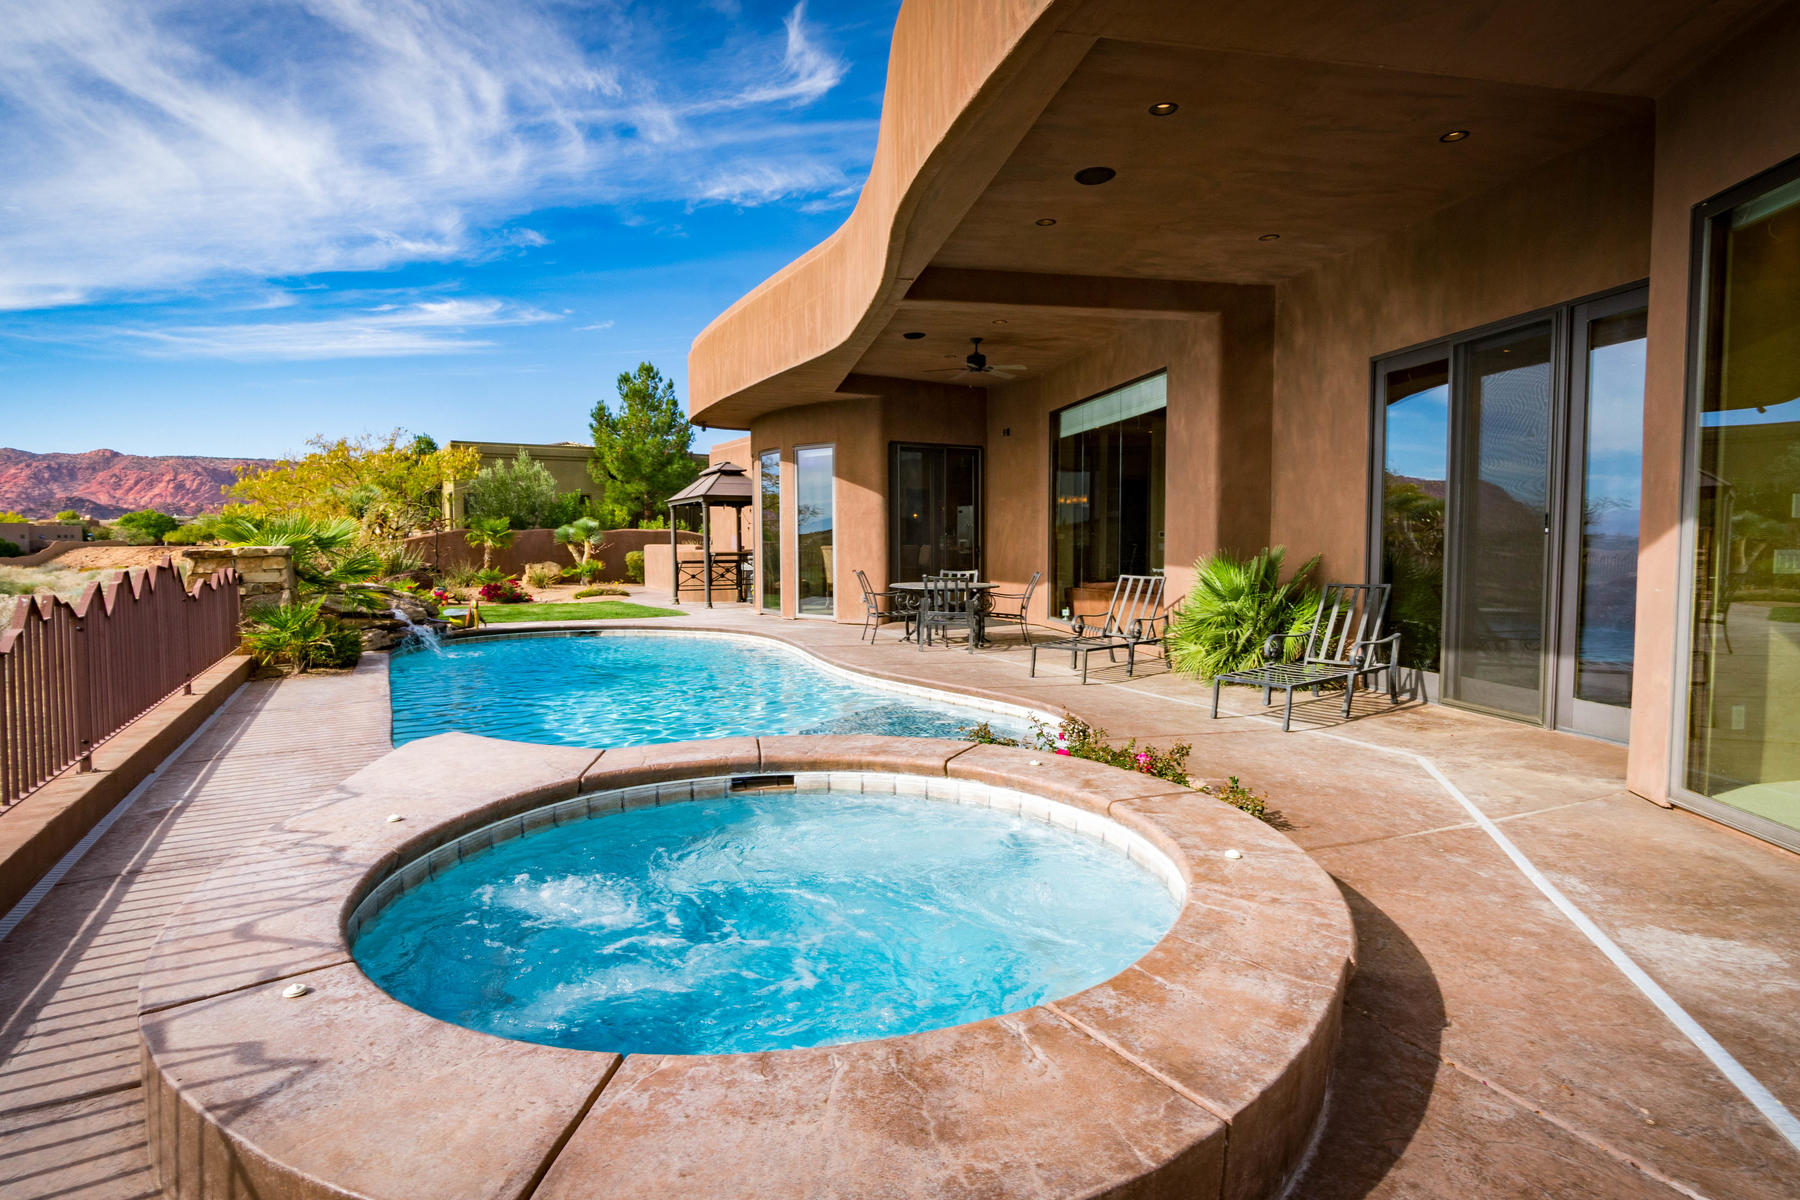 Additional photo for property listing at Spectacular Home at Ledges 1923 W Rising Sun Dr St. George, Utah 84770 États-Unis